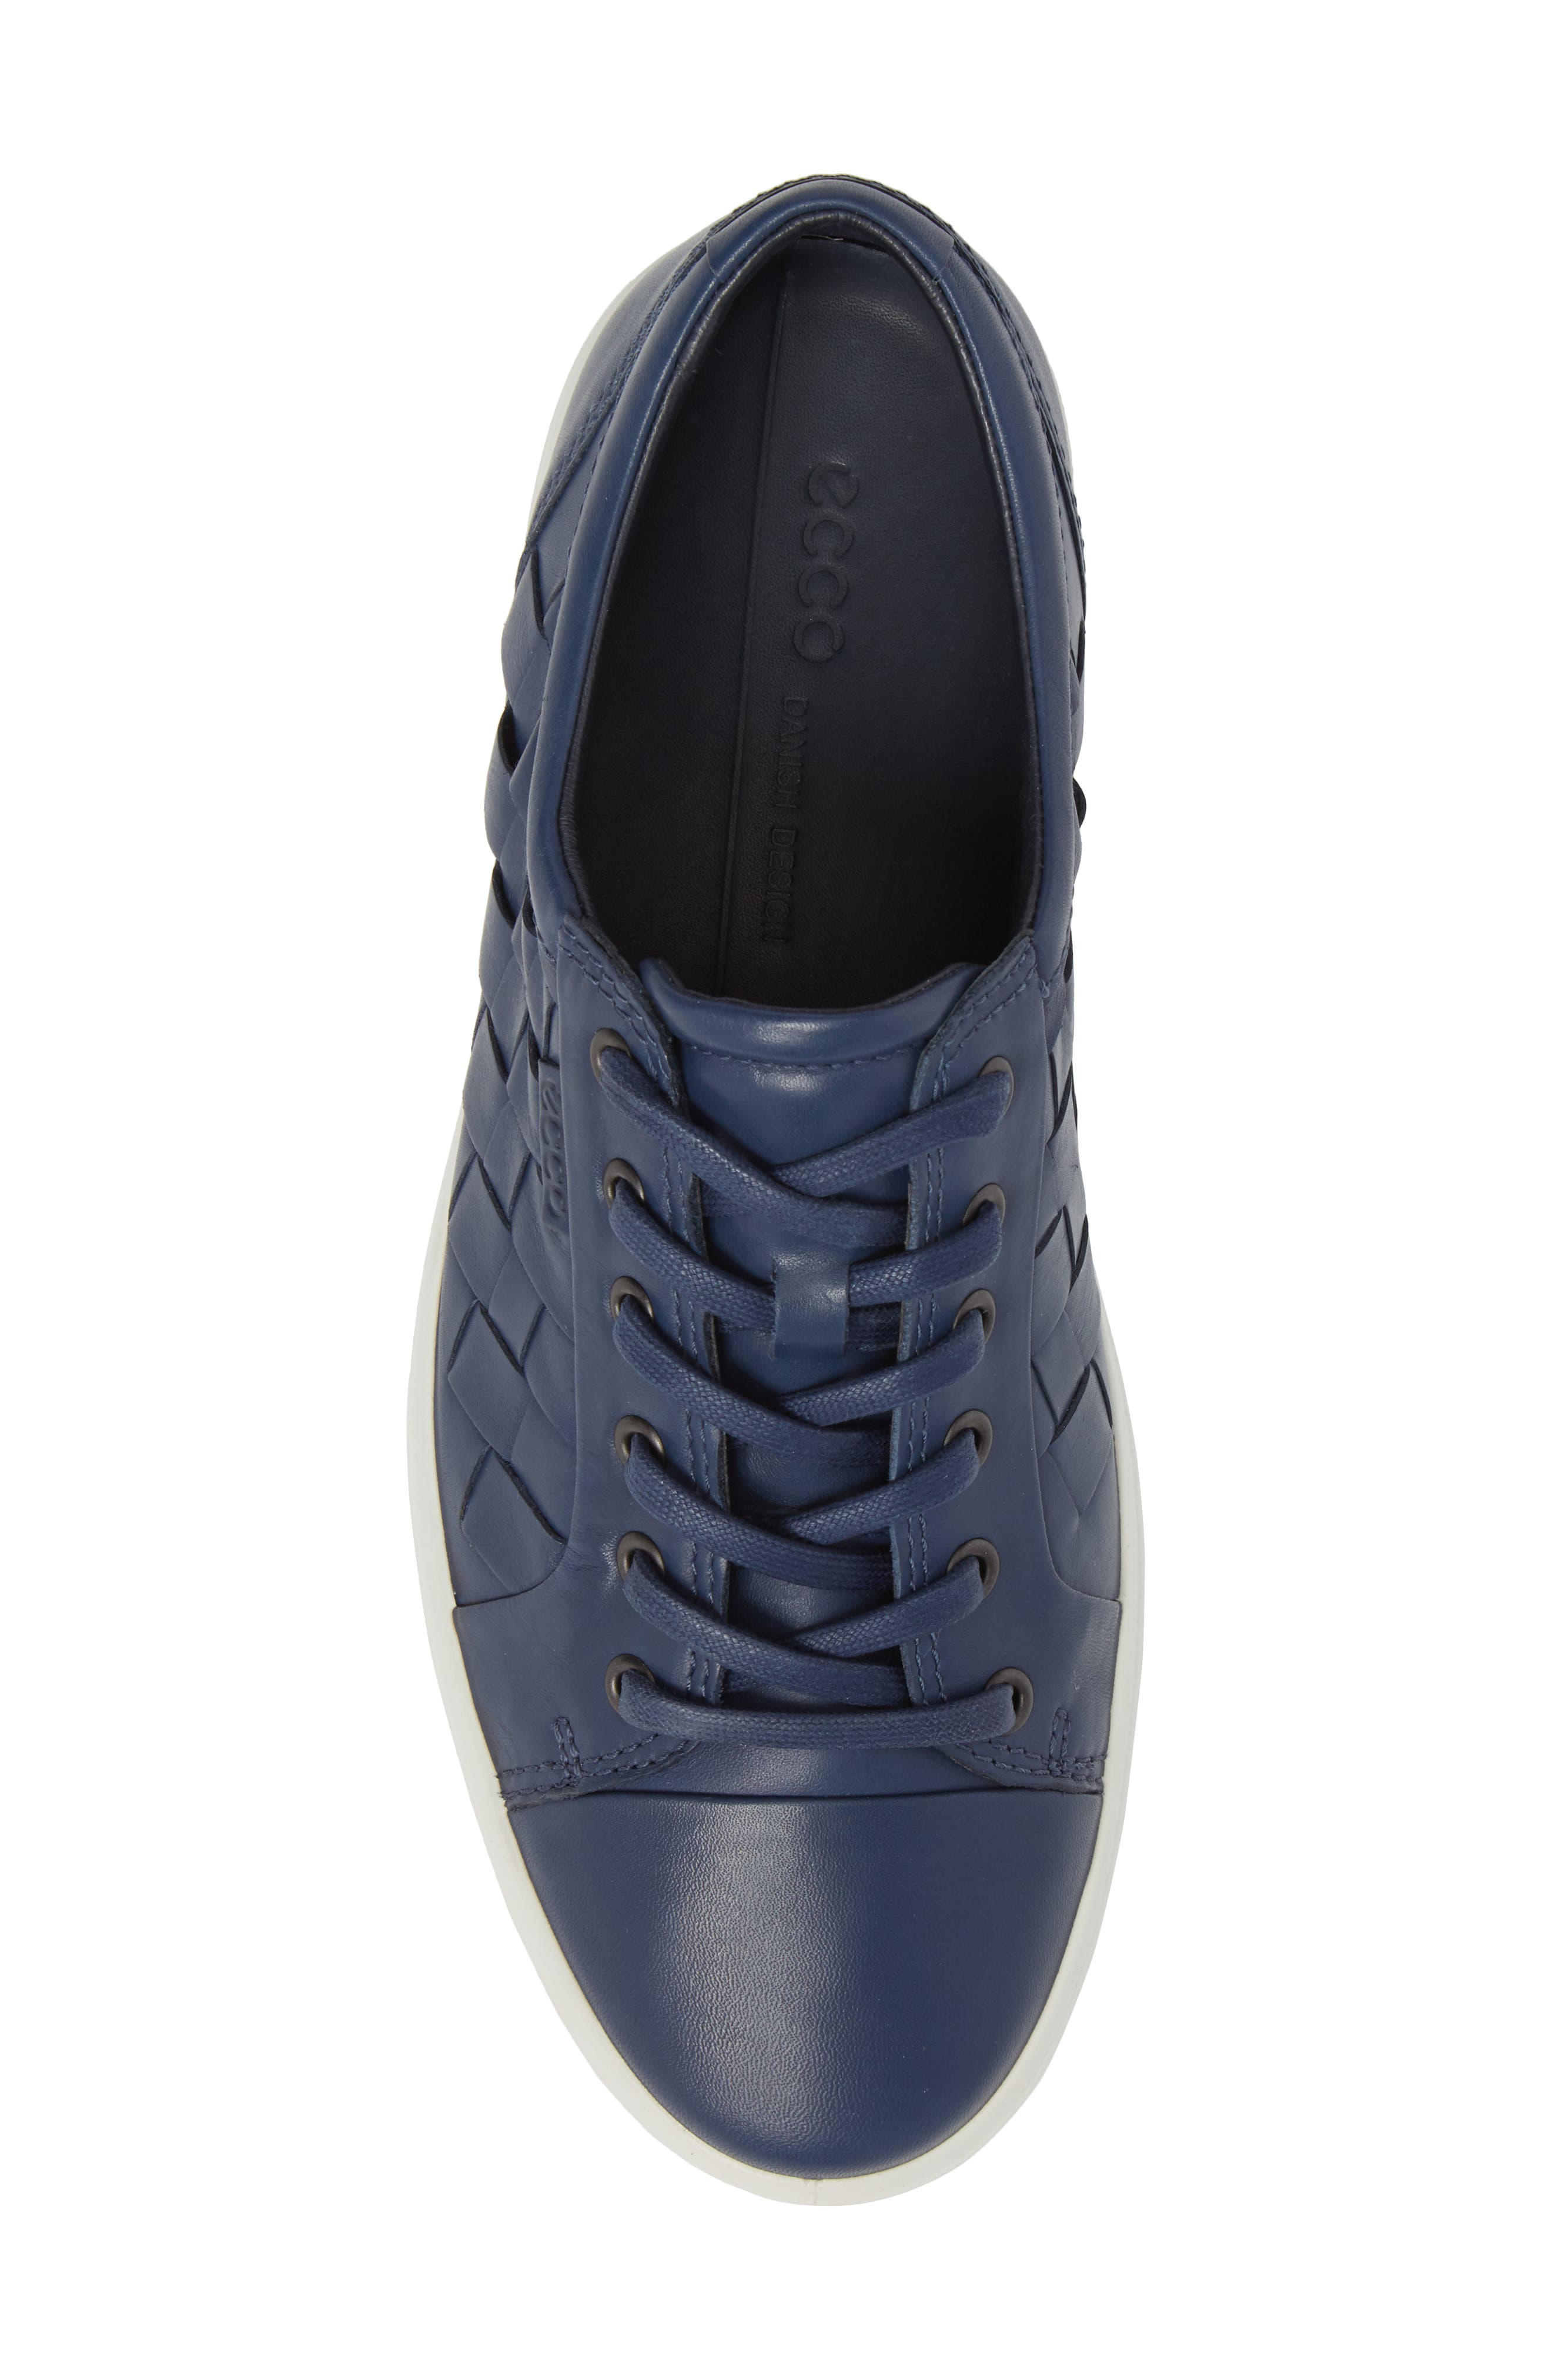 Soft 7 Woven Sneaker,                             Alternate thumbnail 5, color,                             True Navy Leather